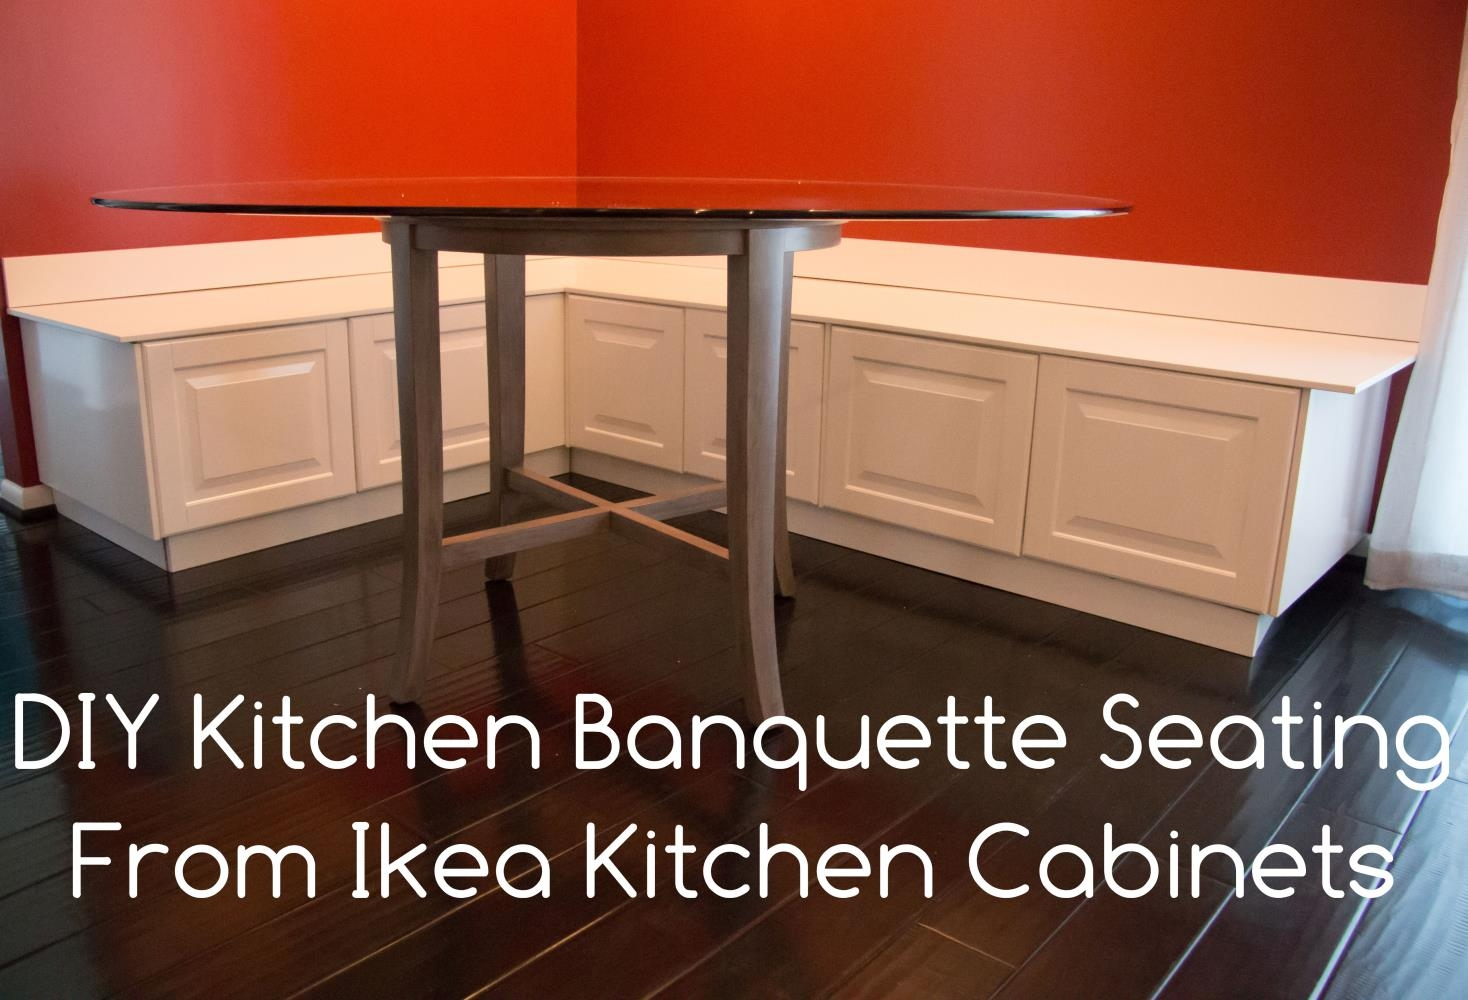 diy kitchen bench with storage lowes cabinet doors banquette using ikea cabinets hacks